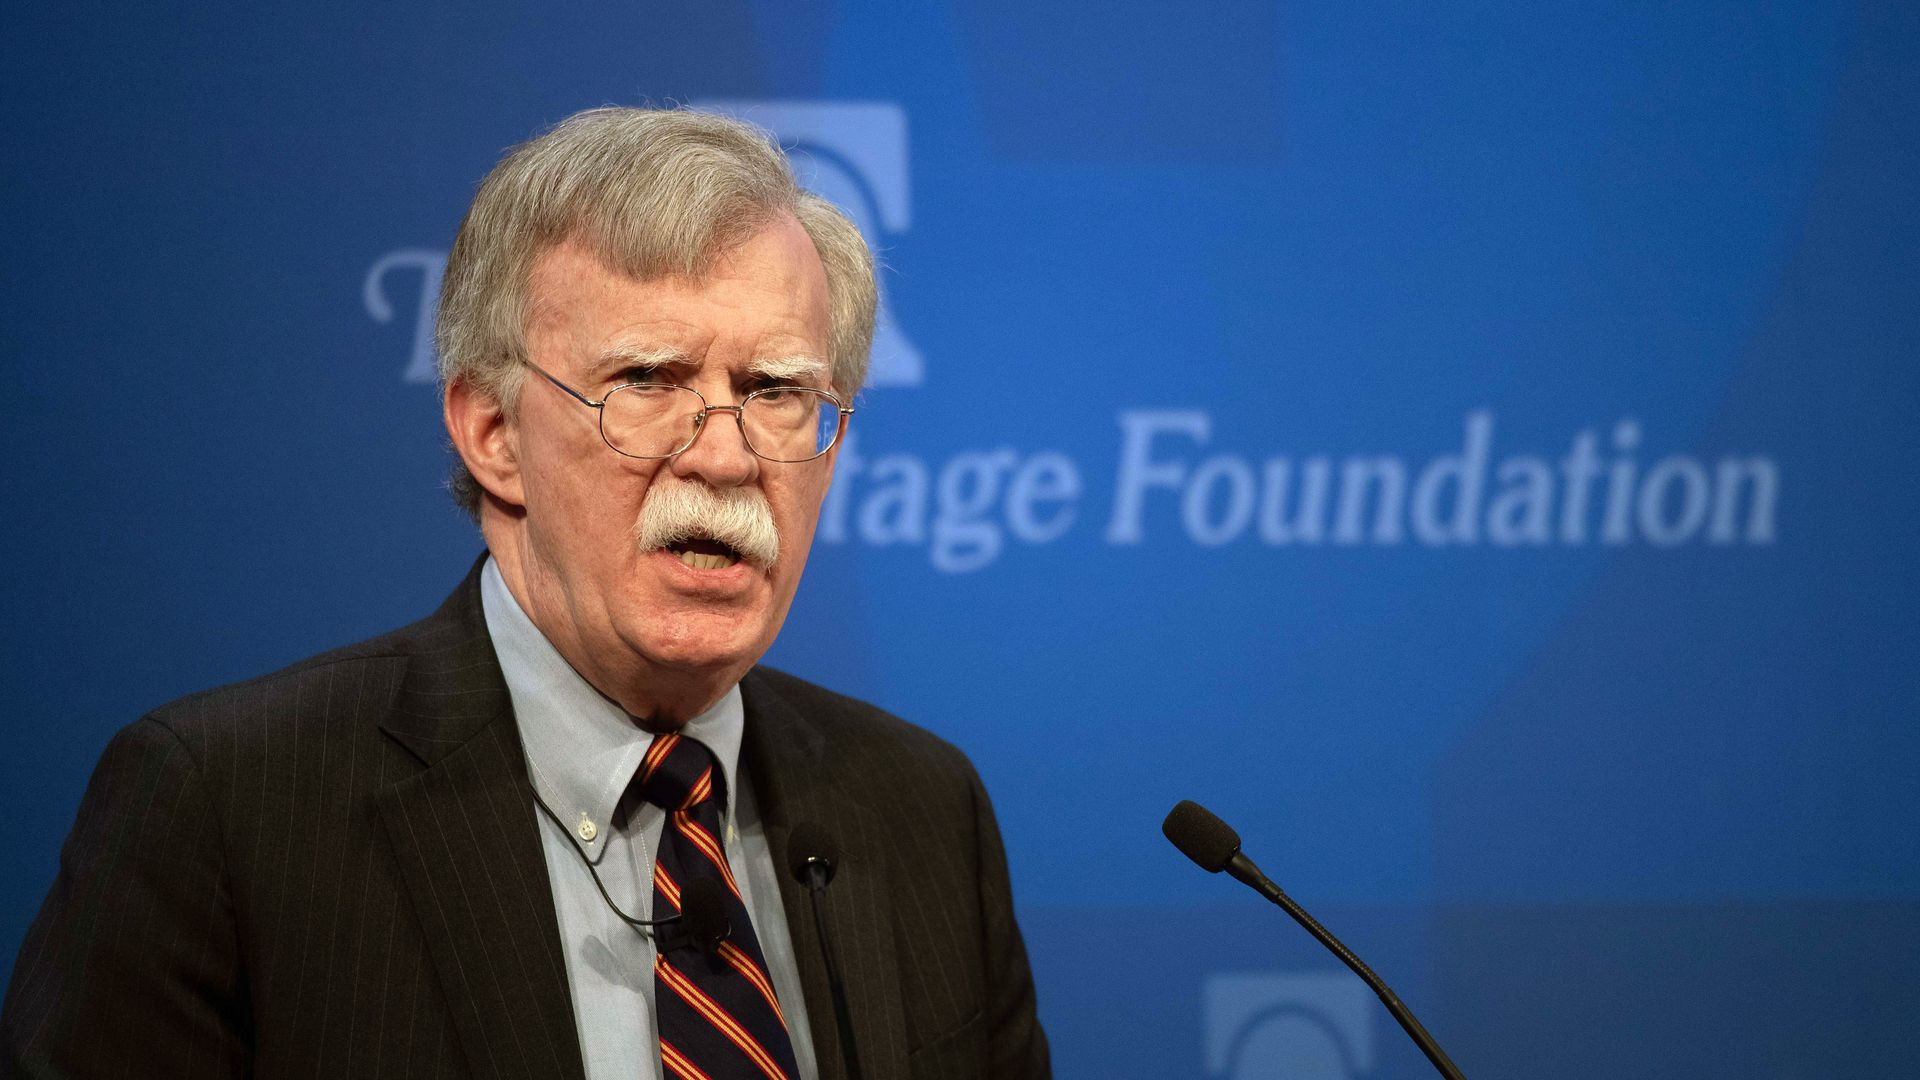 US National Security Advisor John Bolton speaks about the administration's African policy at the Heritage Foundation in Washington, DC